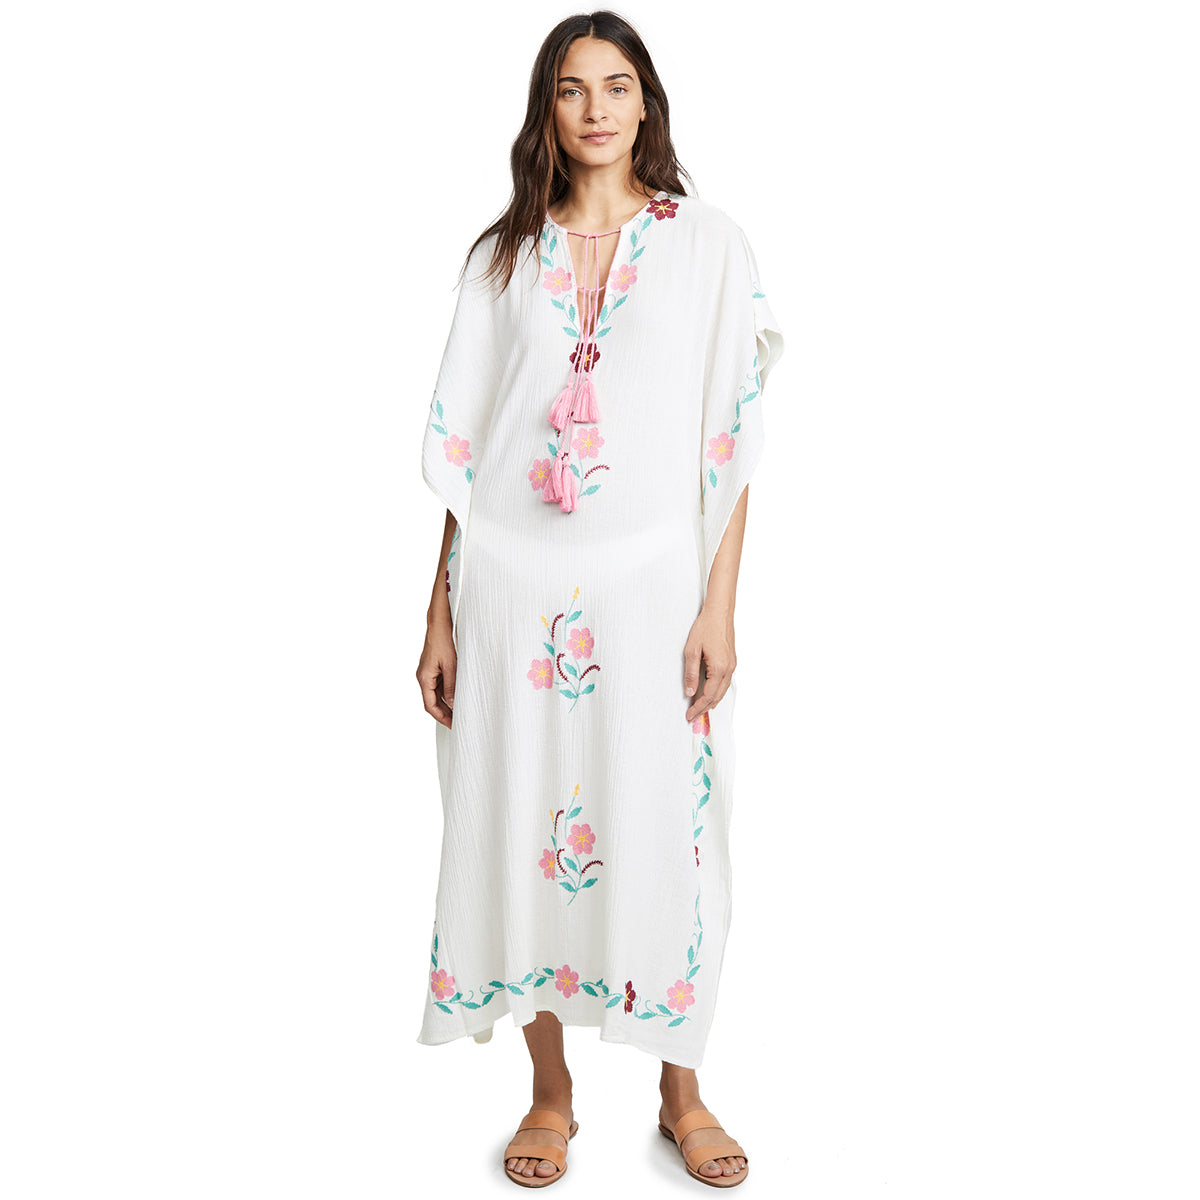 White Floral Embroidery Maxi Beach Dress S to XL